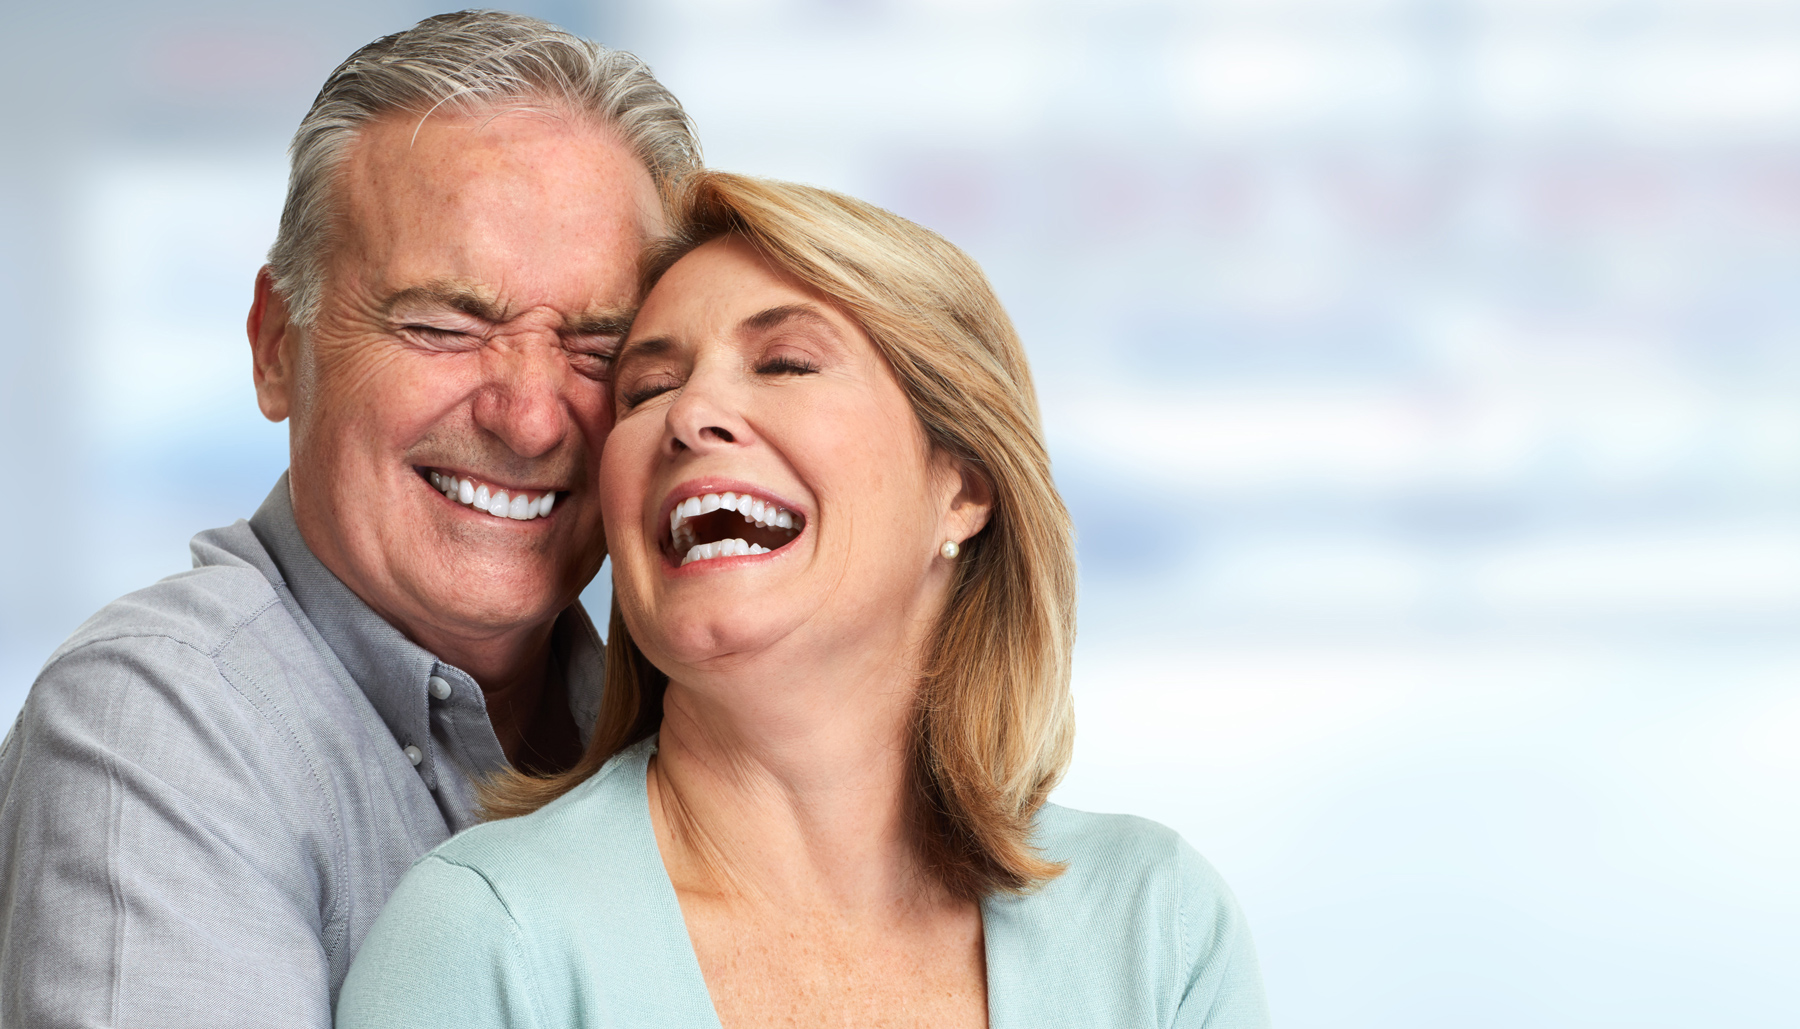 Couple-smiling-Cosmetic-Dentistry.jpg